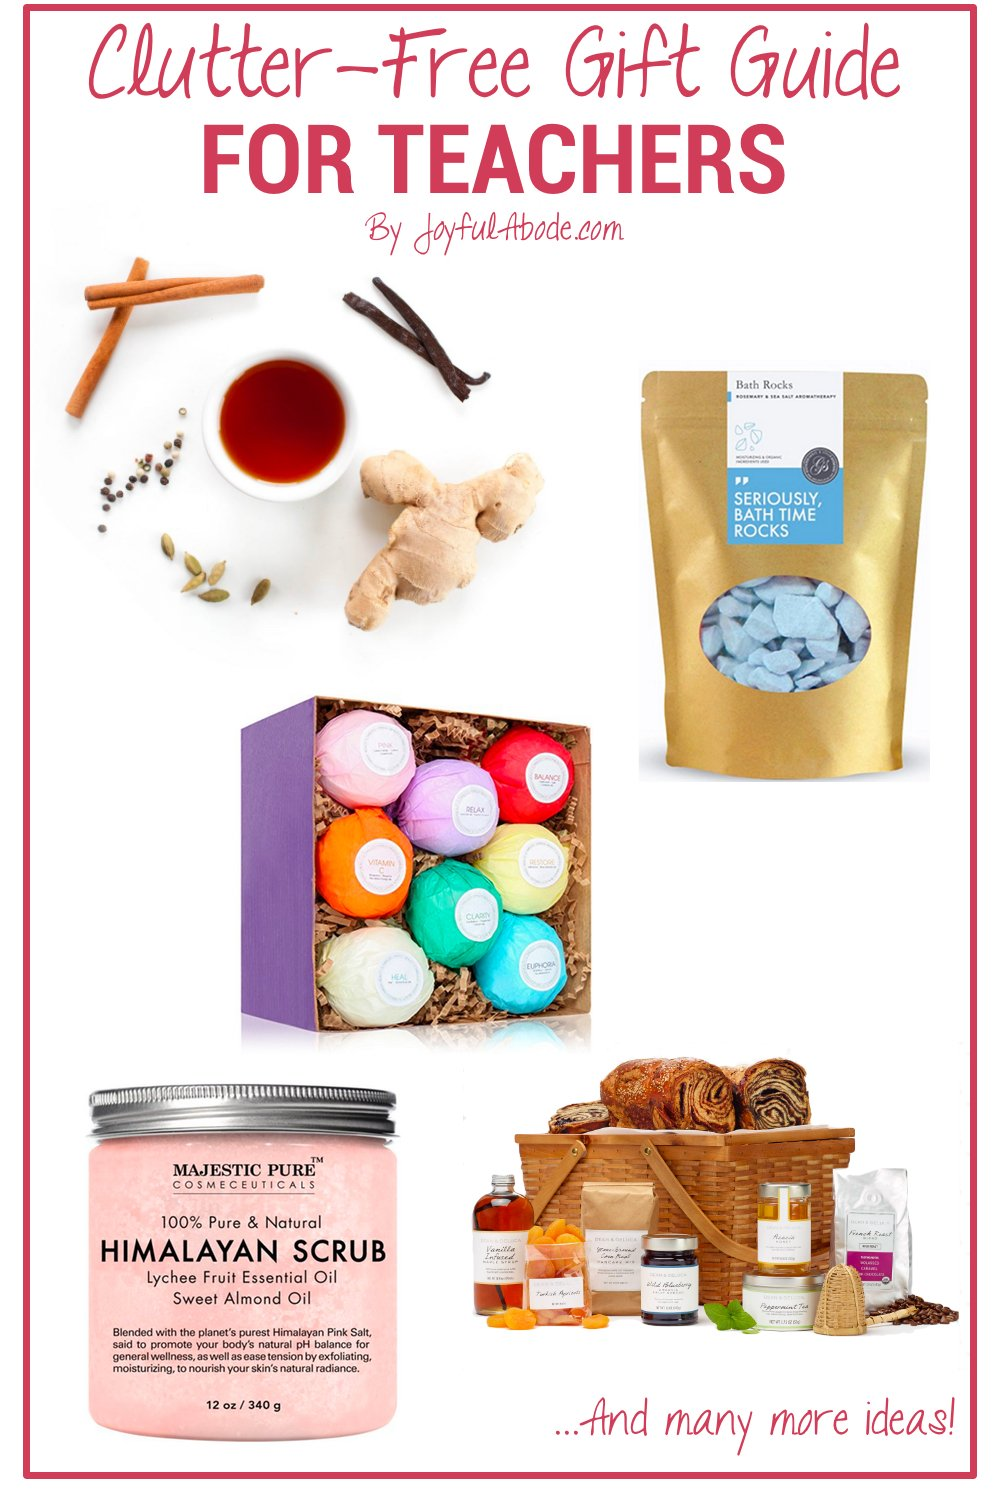 Looking for some great clutter-free gift ideas for your kids' teachers? This is a great guide to get you started!